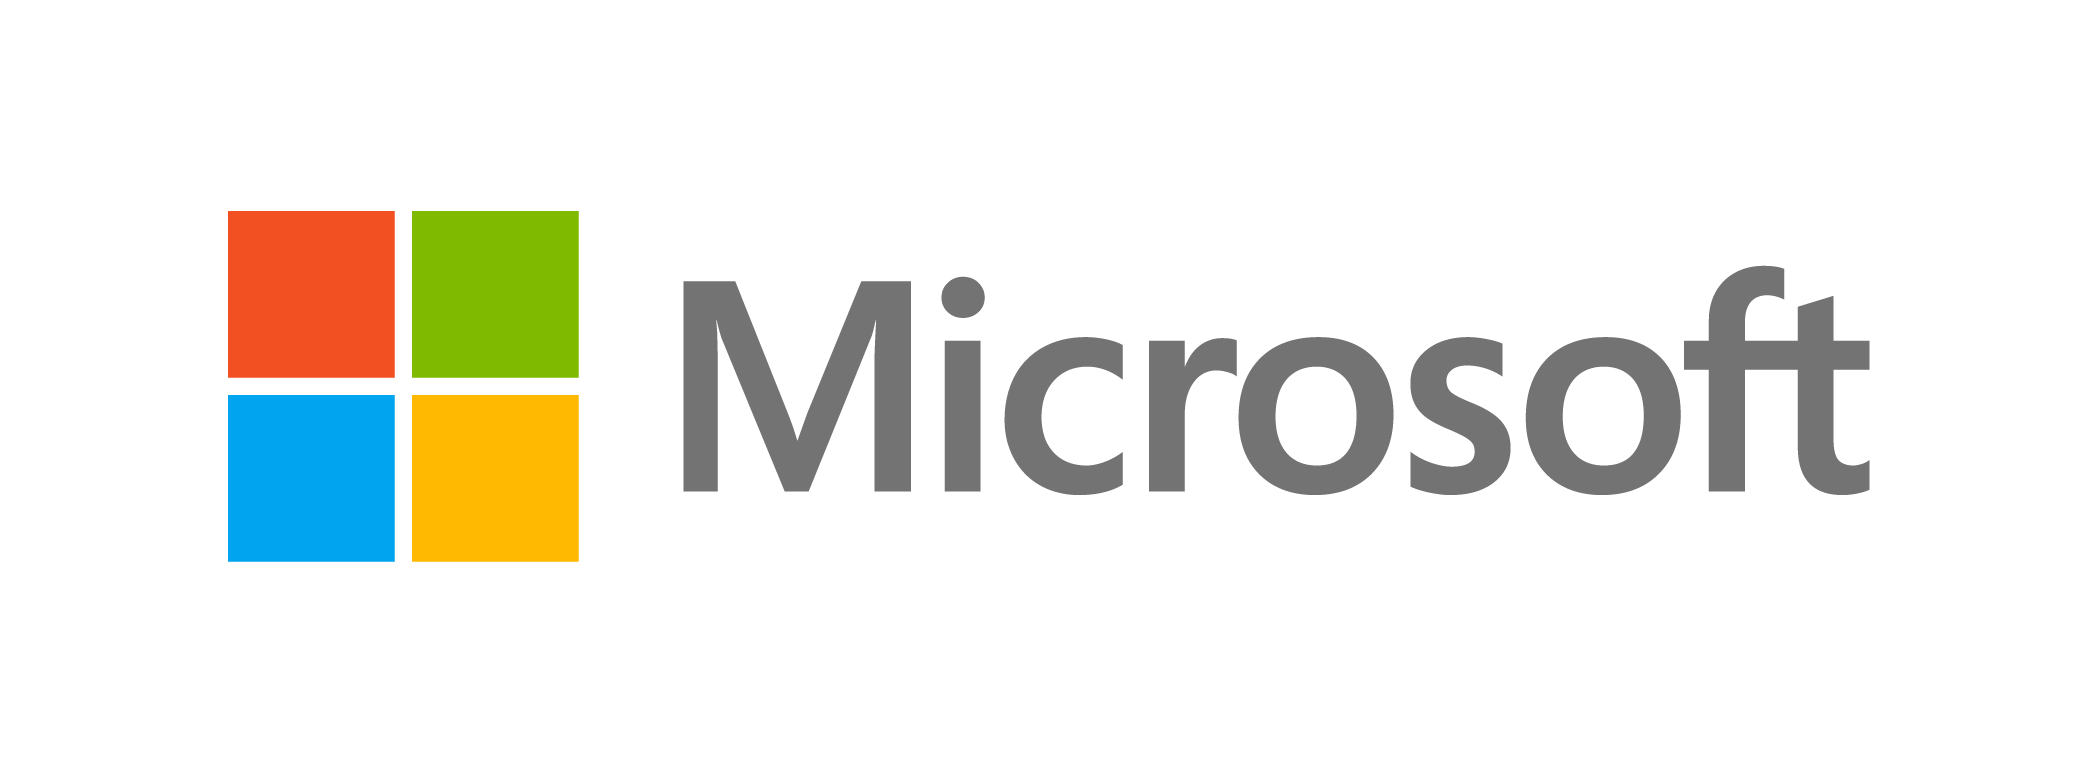 Shop at Microsoft online